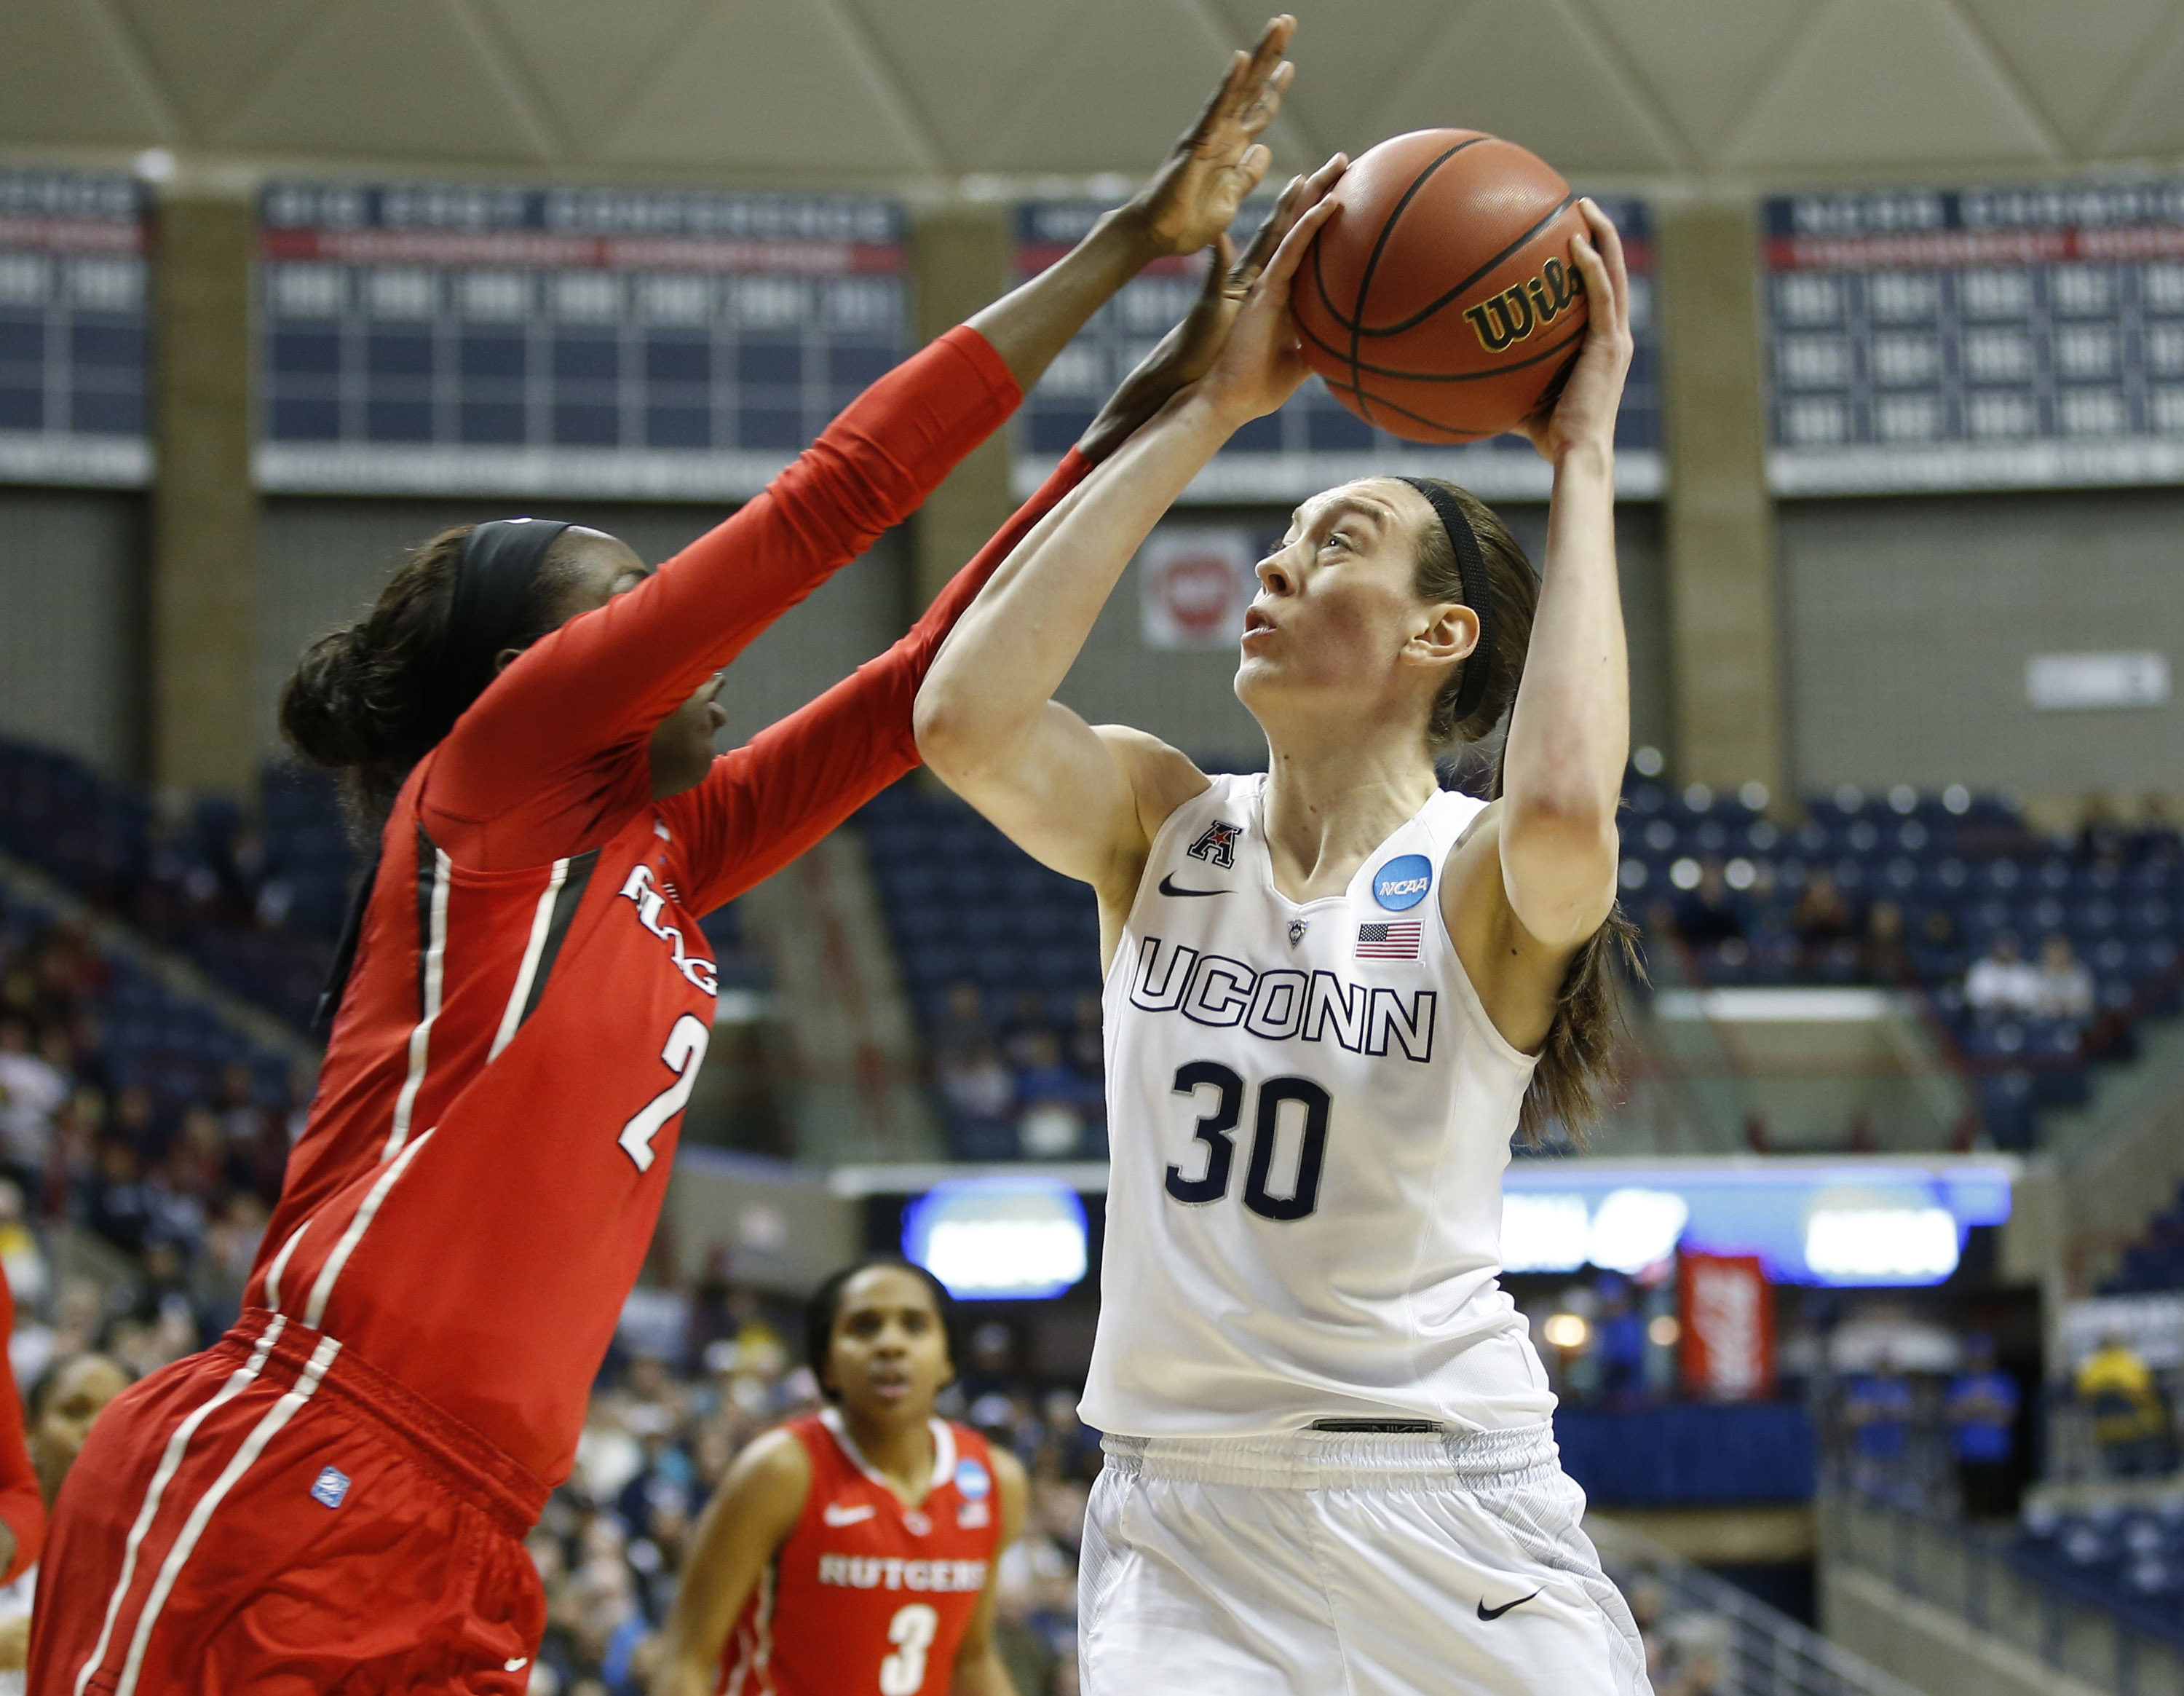 Women's NCAA Tournament 2015 schedule and bracket: The Elite Eight will be set on Saturday